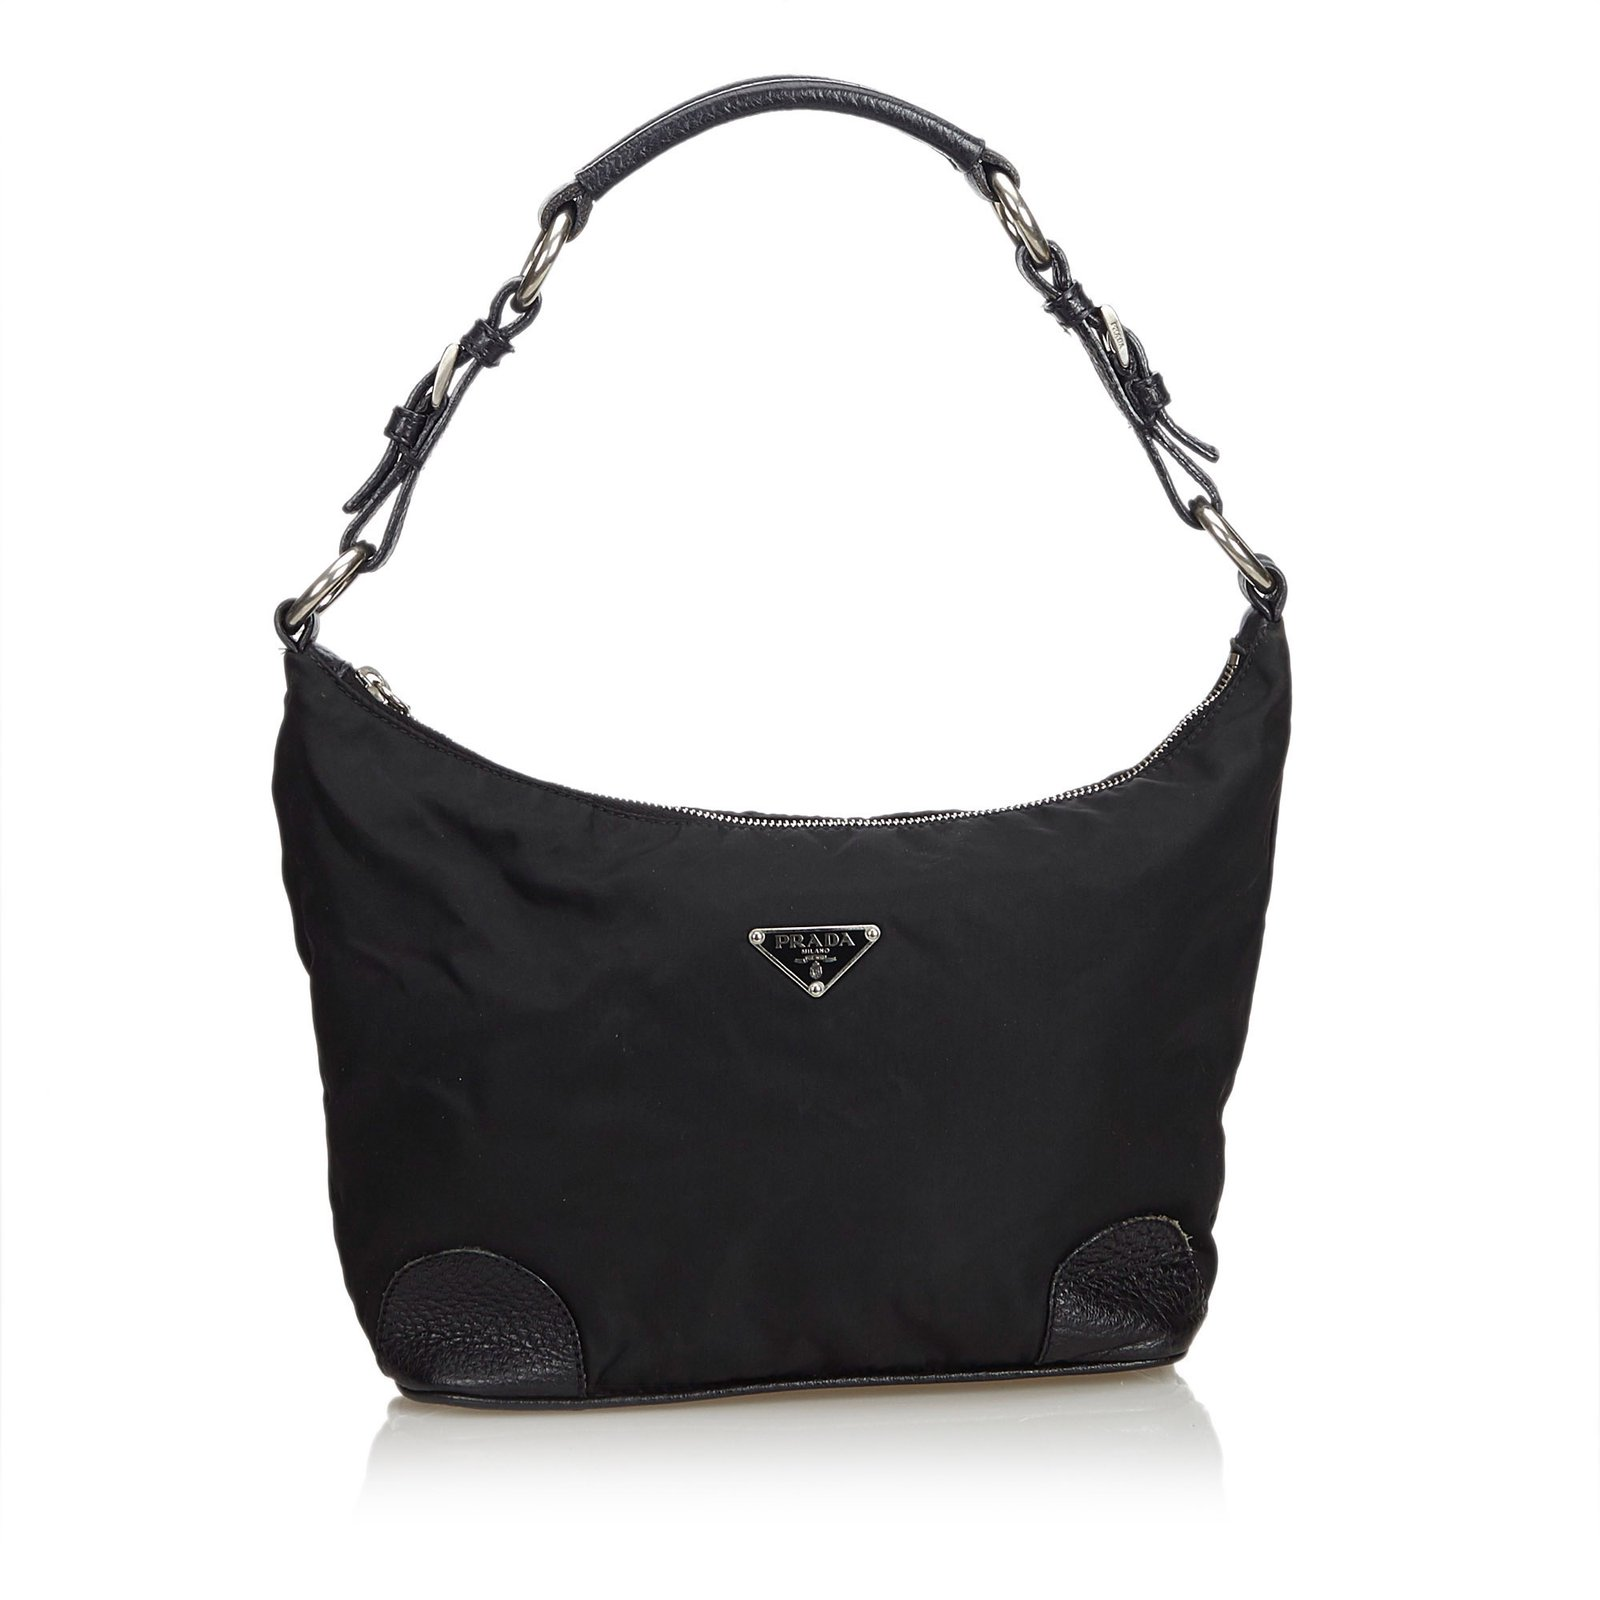 9e9087ca424 ... where to buy prada nylon shoulder bag handbags leatherothernyloncloth  black ref.100340 86704 9de1e